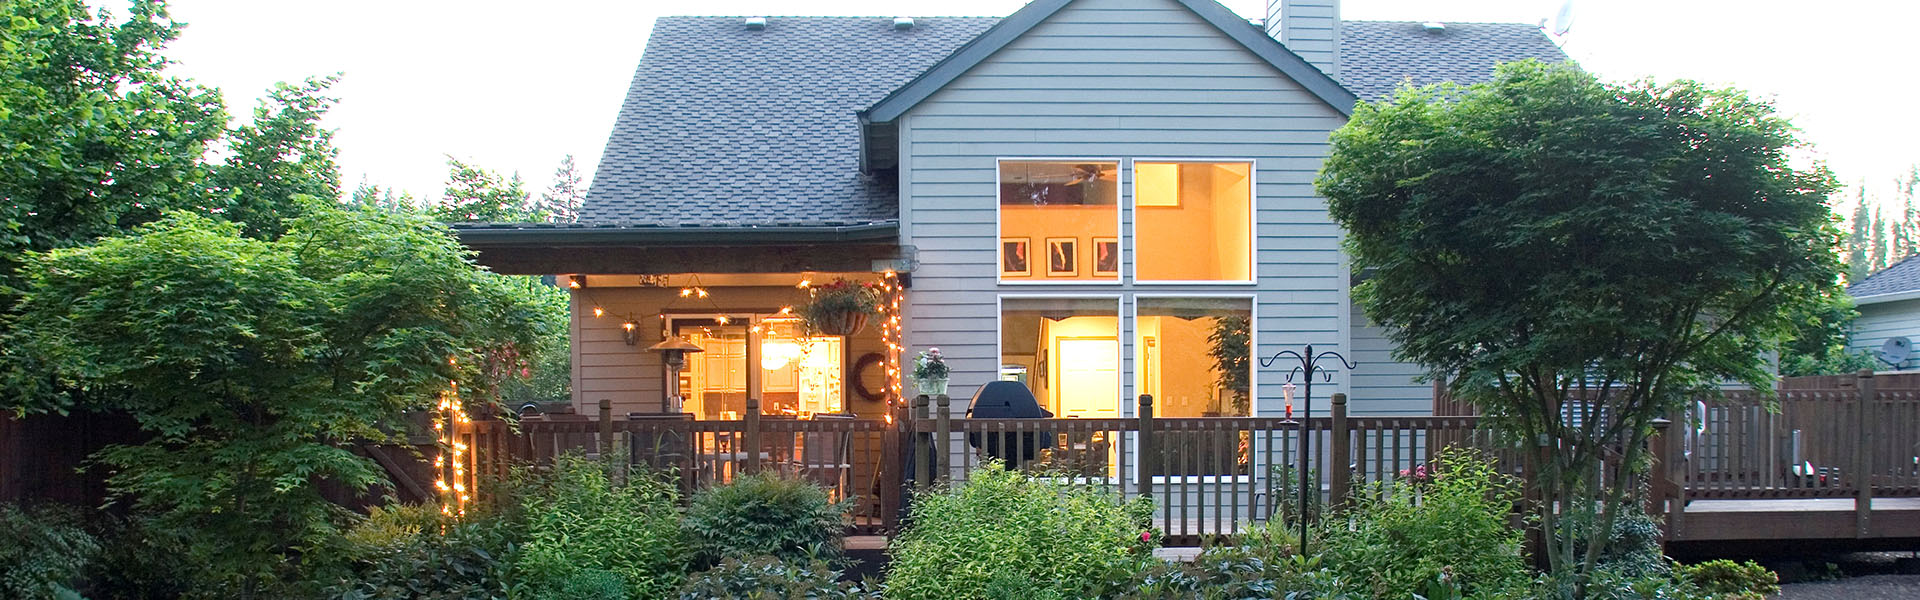 Furnished Property Rentals Vancouver for Students